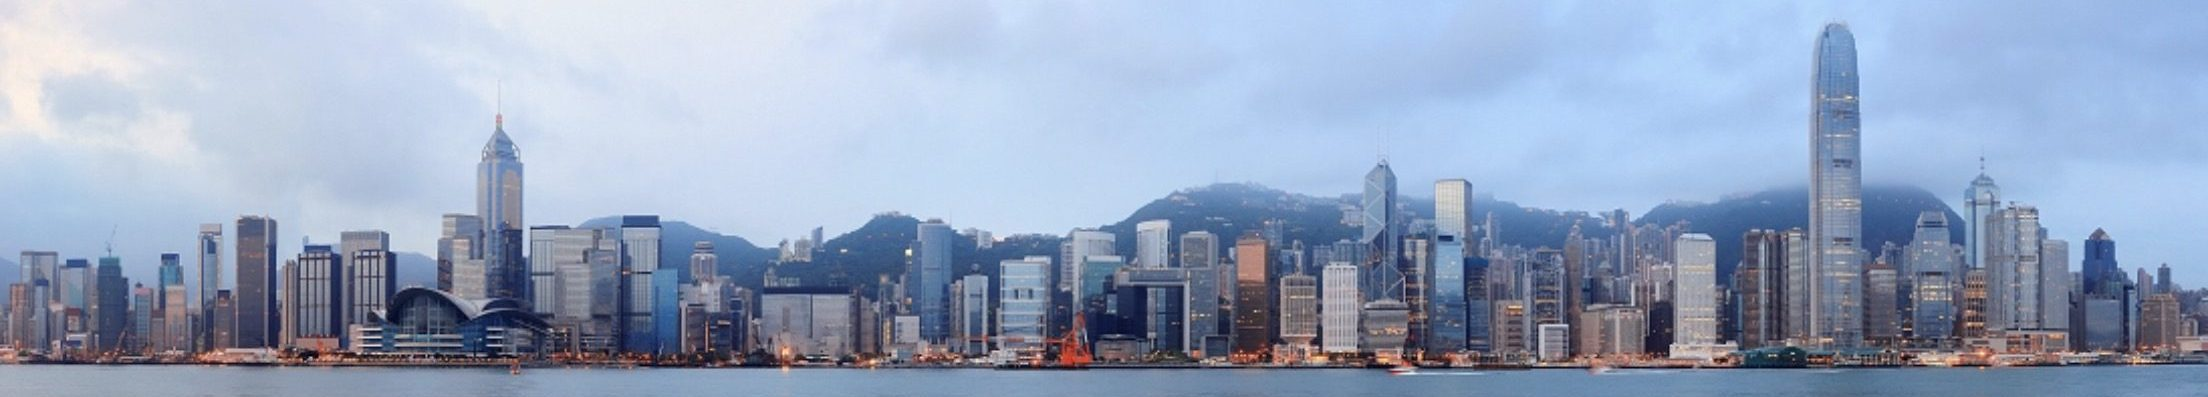 Hong Kong Victoria Harbour